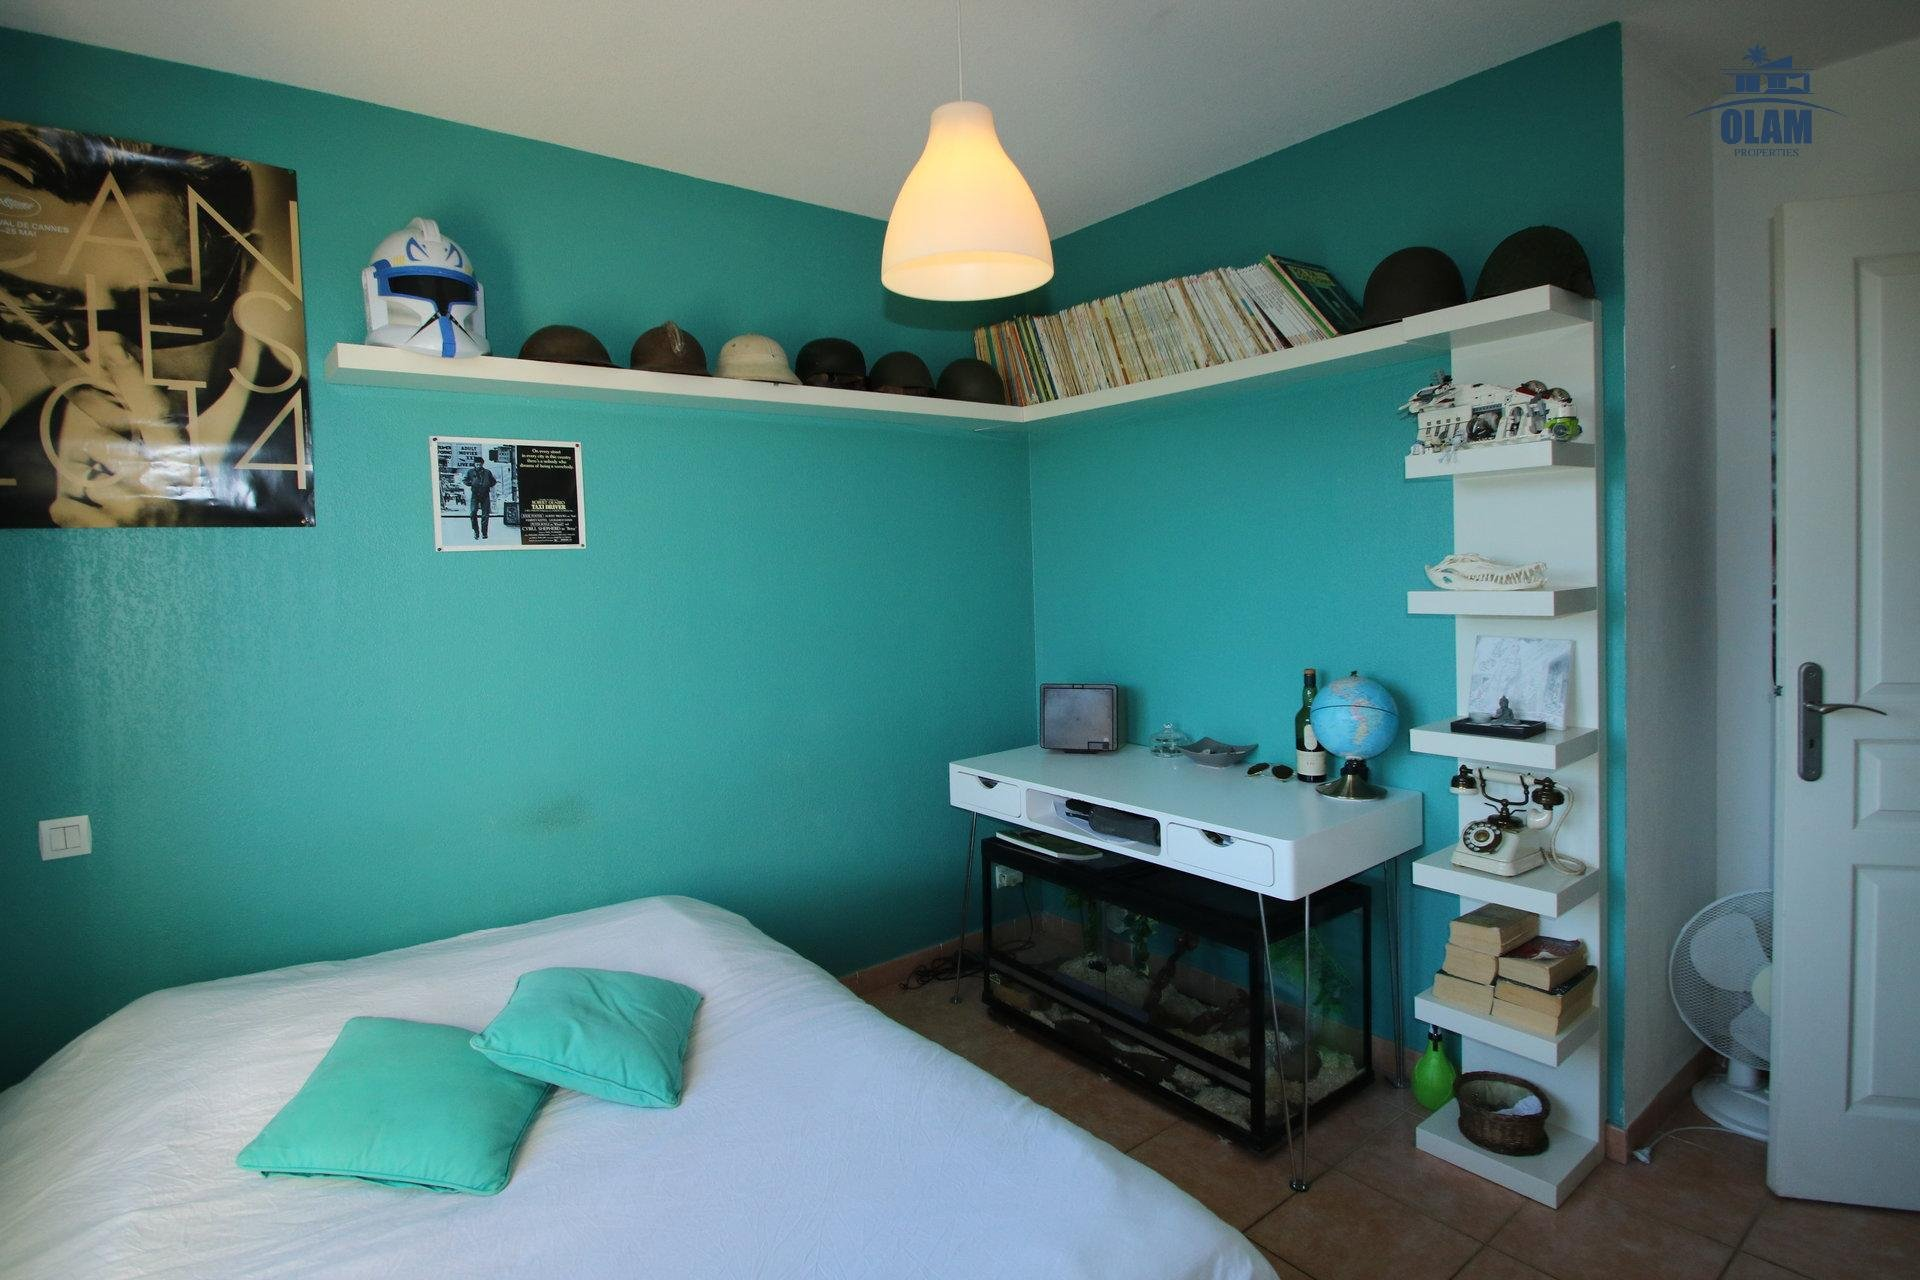 Bedroom, queensize bed, street view, Cannes, French Riviera